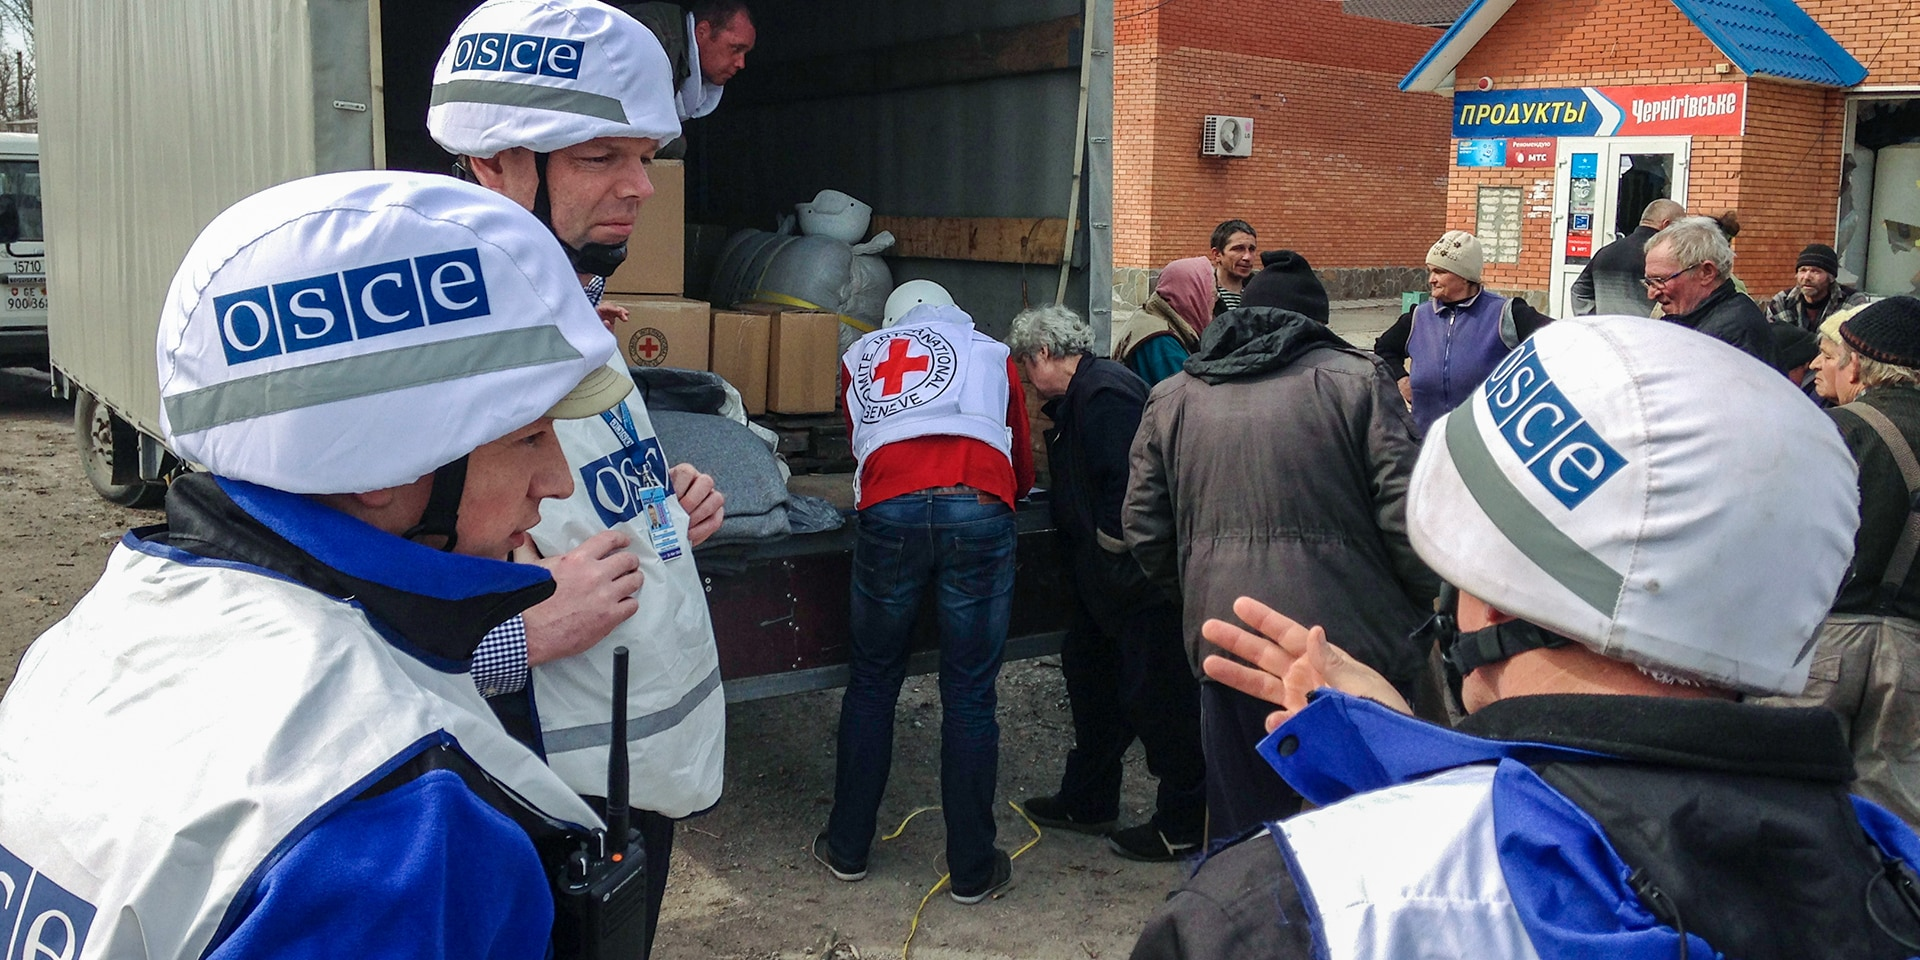 Three members of the OSCE mission observe the delivery of aid packages to the Ukrainian population.